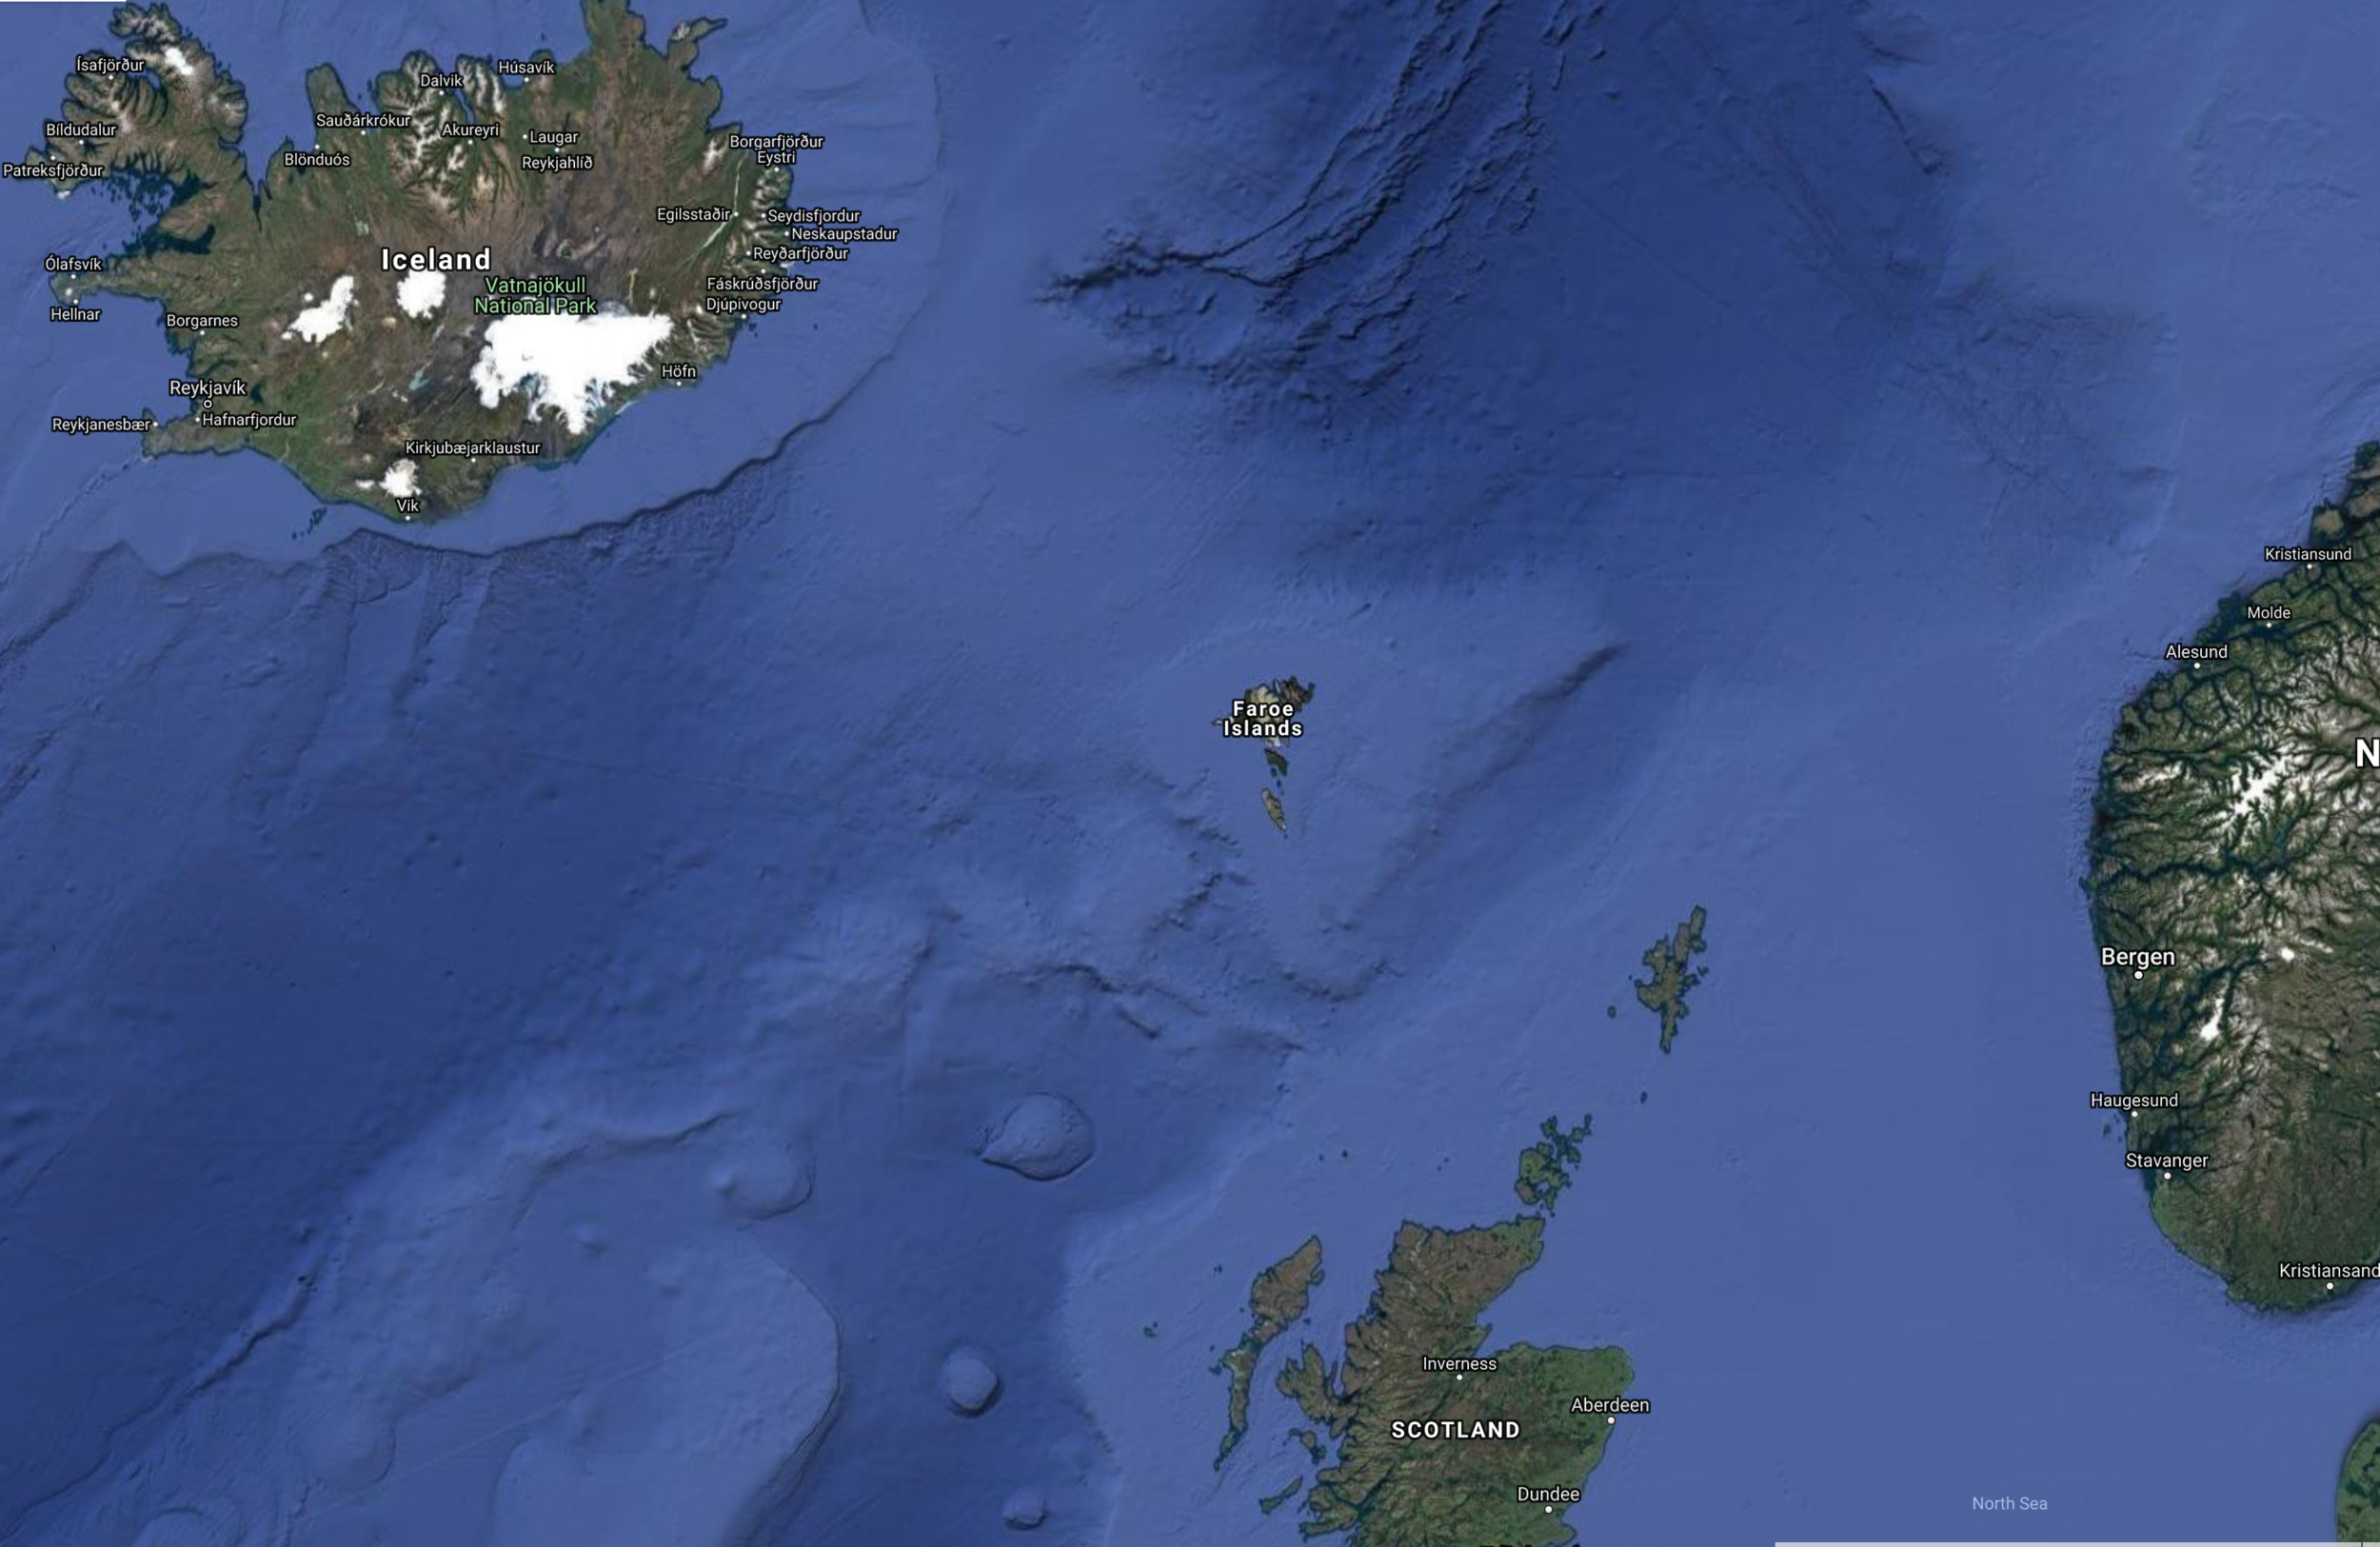 The Shetlands and the Orkneys are the two little groups of islands to the north of Scotland